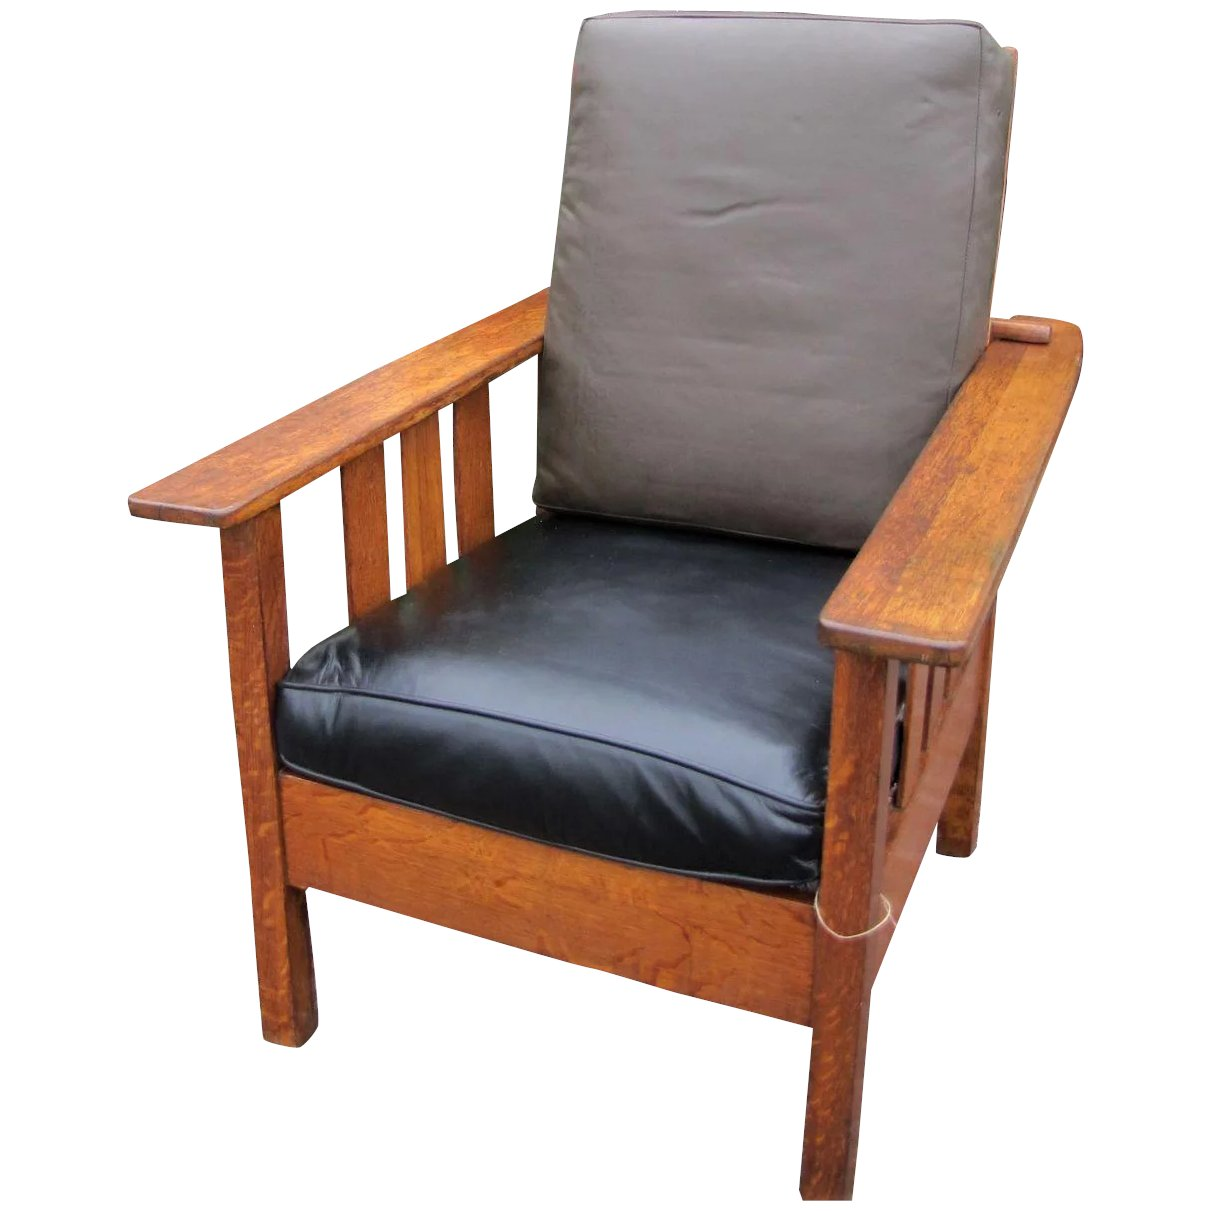 Antique Limbert Style Morris Chair w1605. Click to expand - Antique Limbert Style Morris Chair W1605 : Antique Mission Furniture